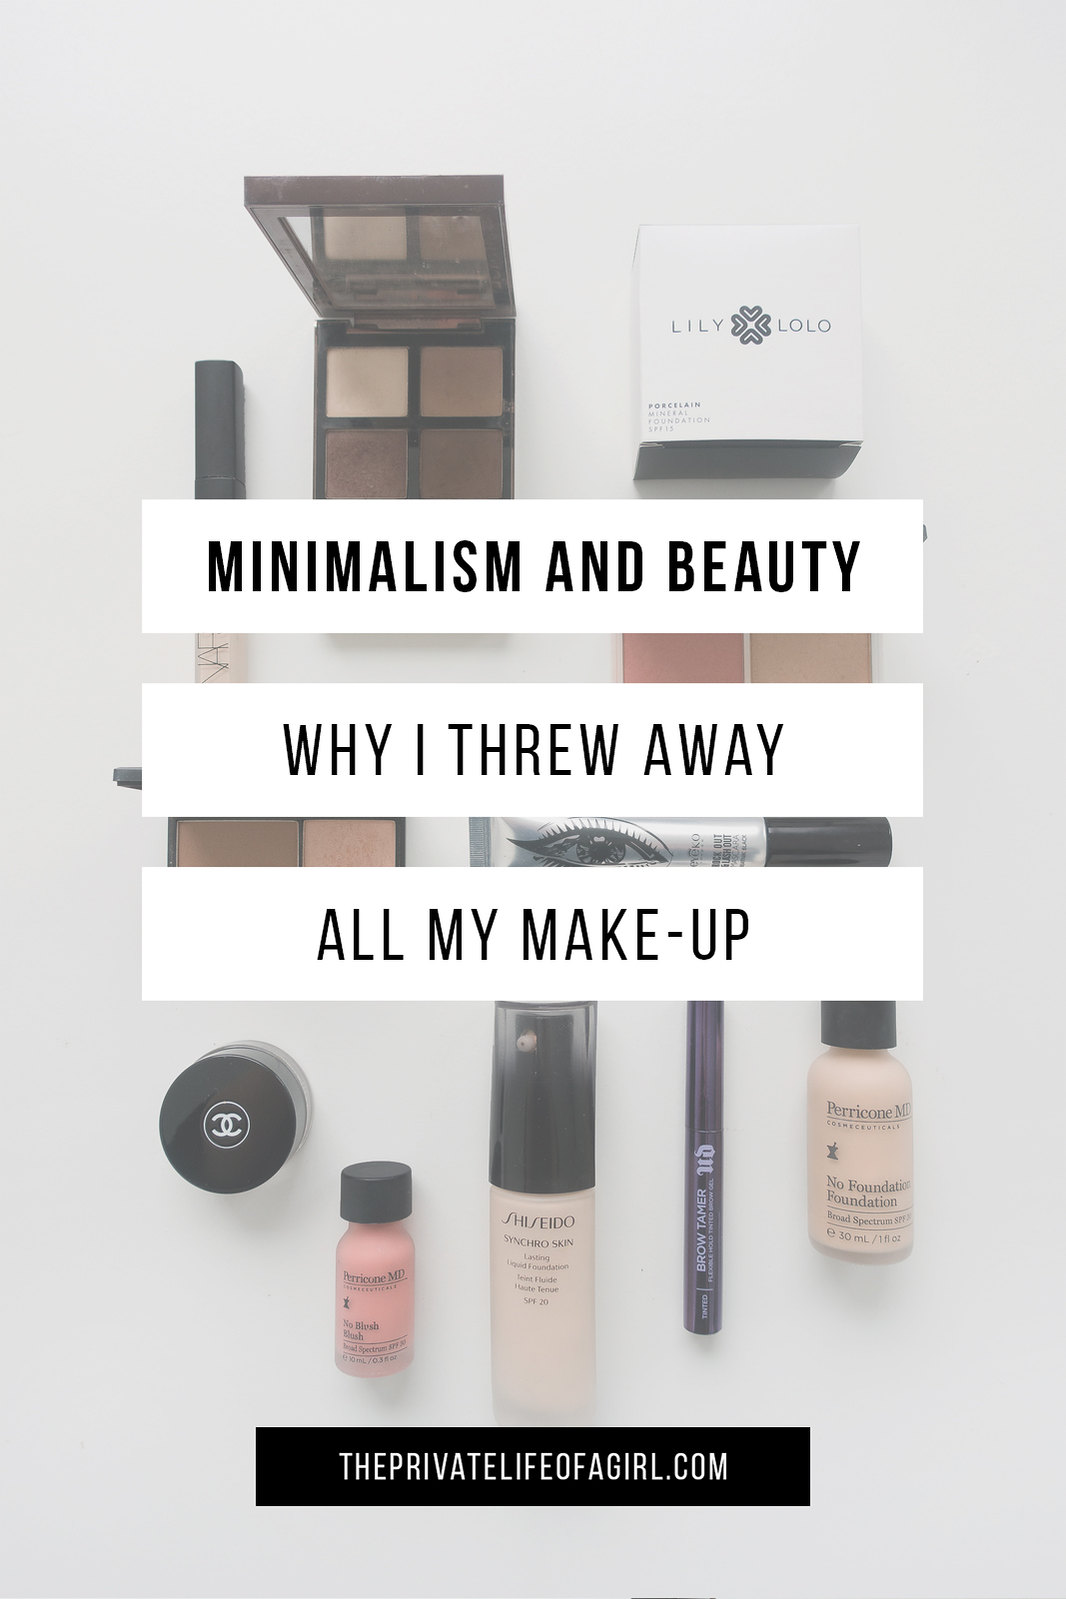 Minimalism and Beauty: Why I Threw Away My Make-Up